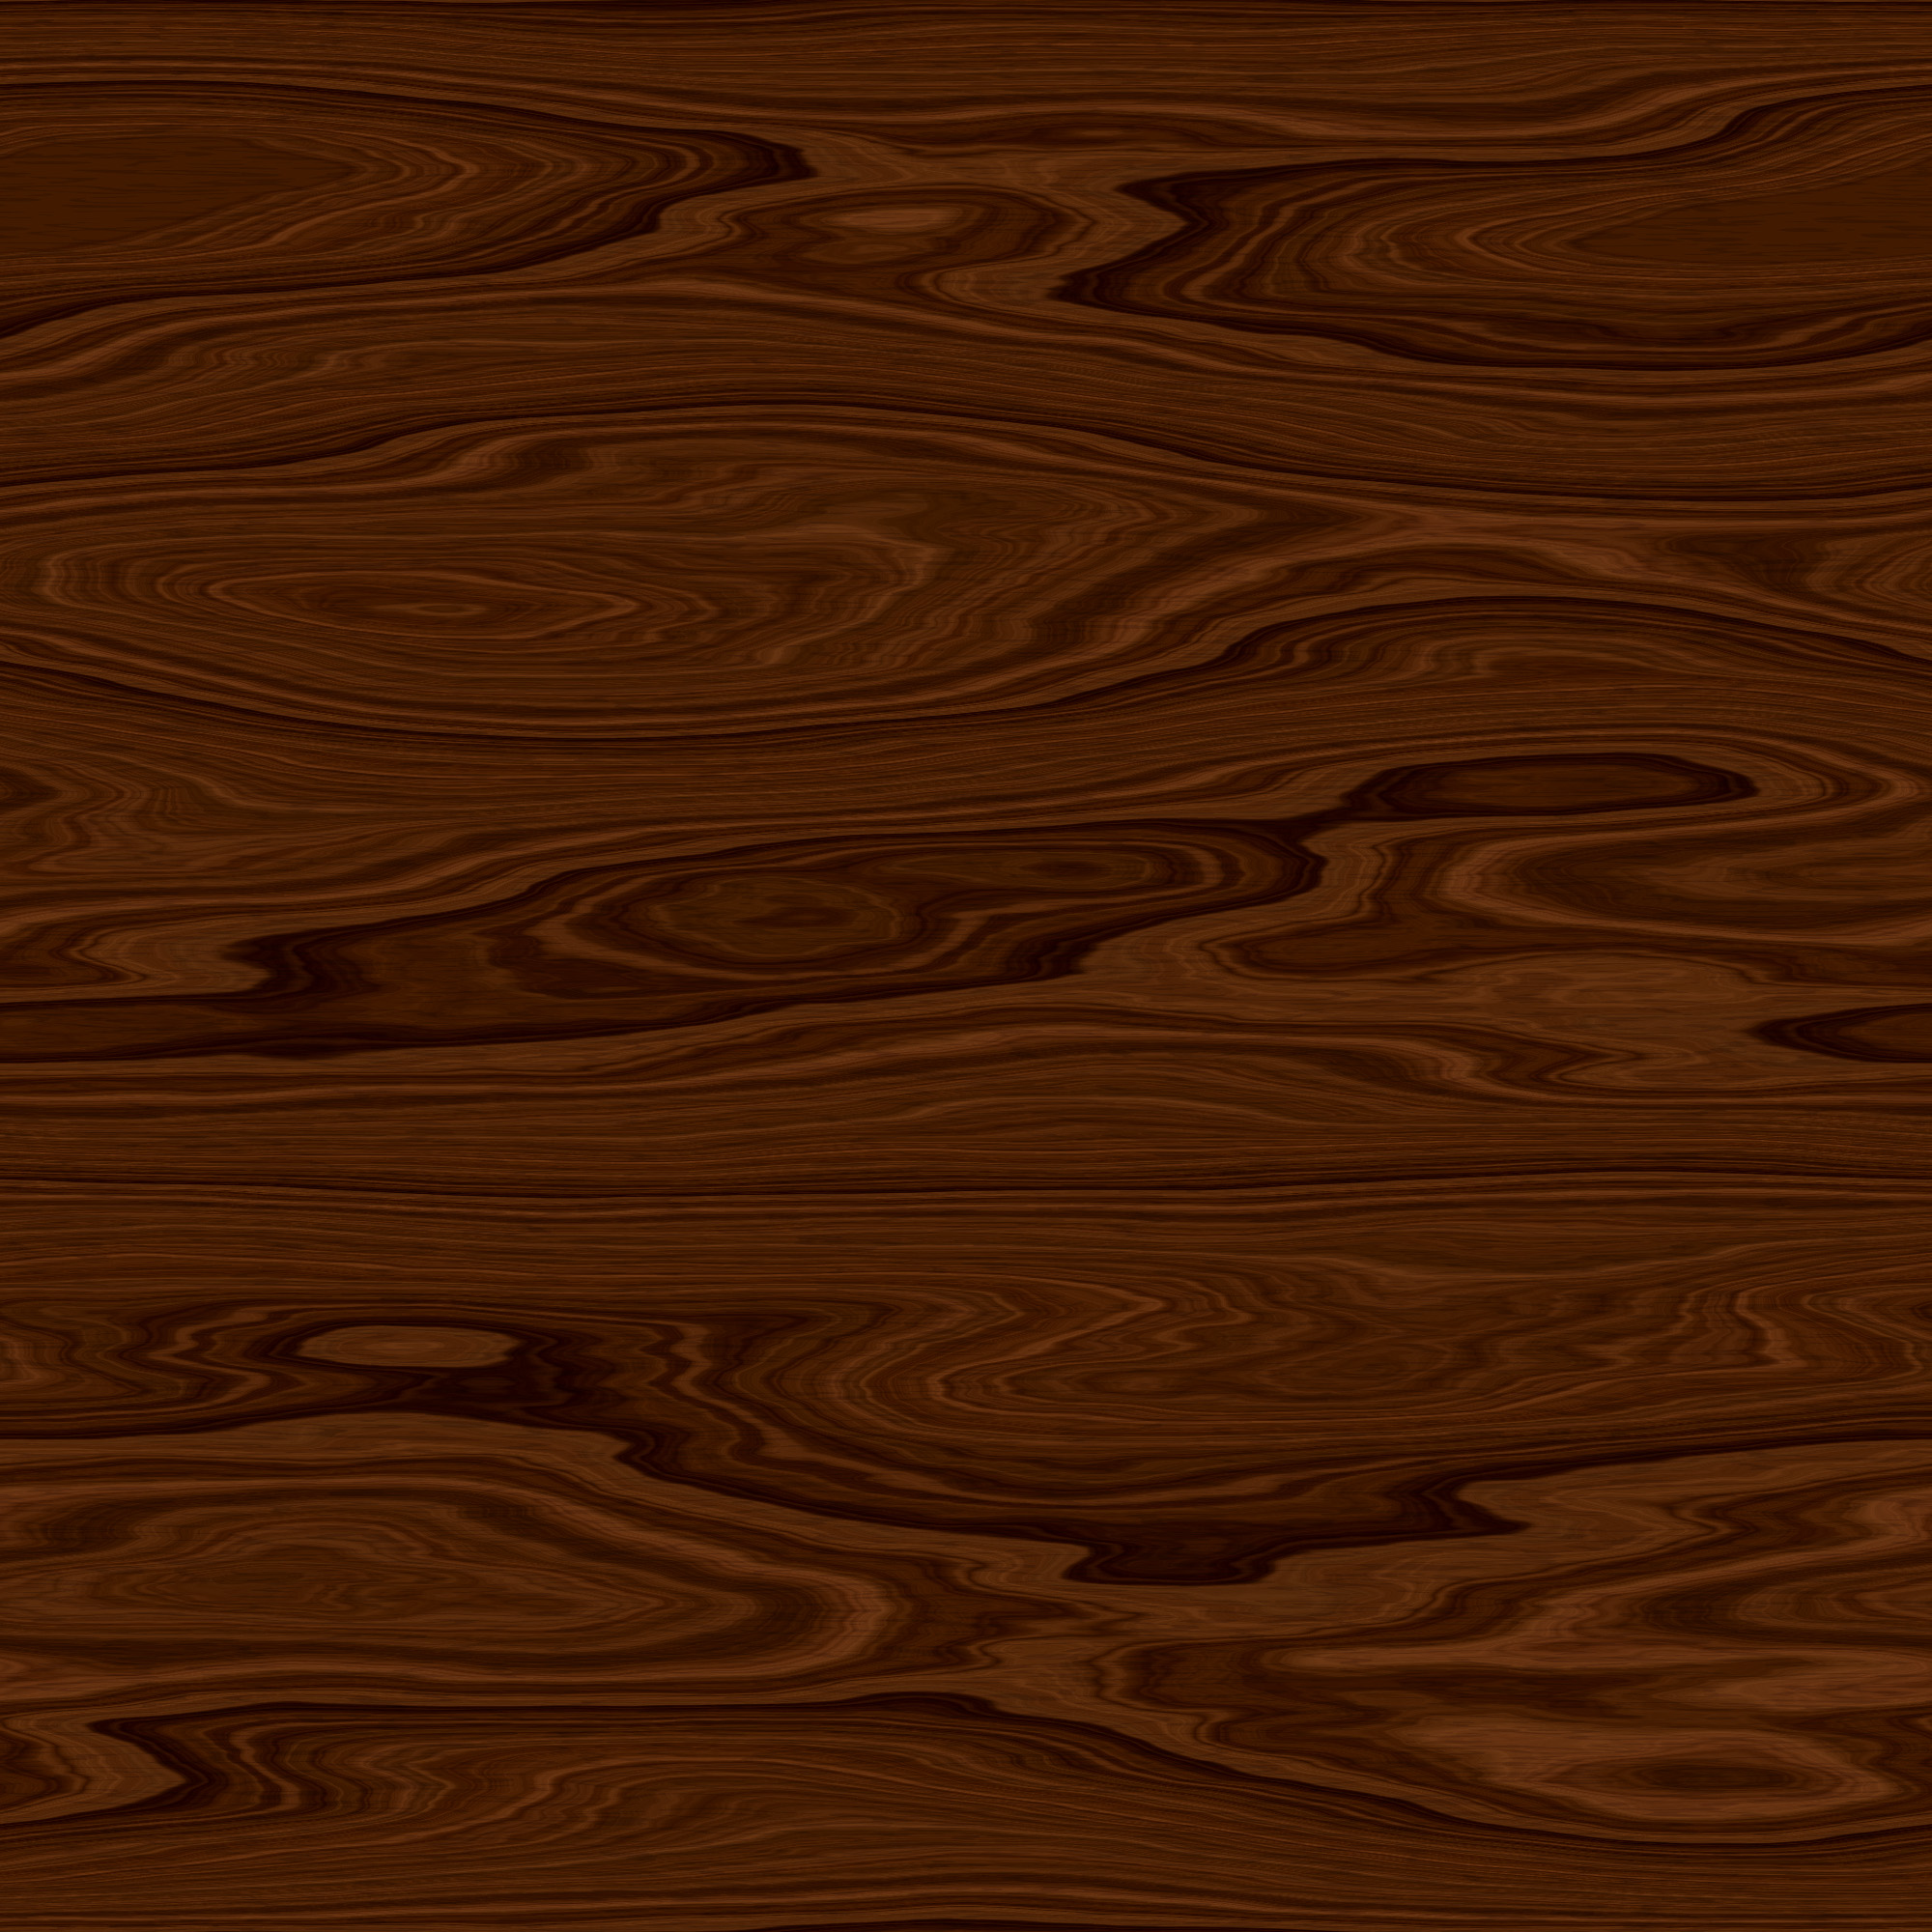 Dark Wood clipart deep Www seamless  wood com